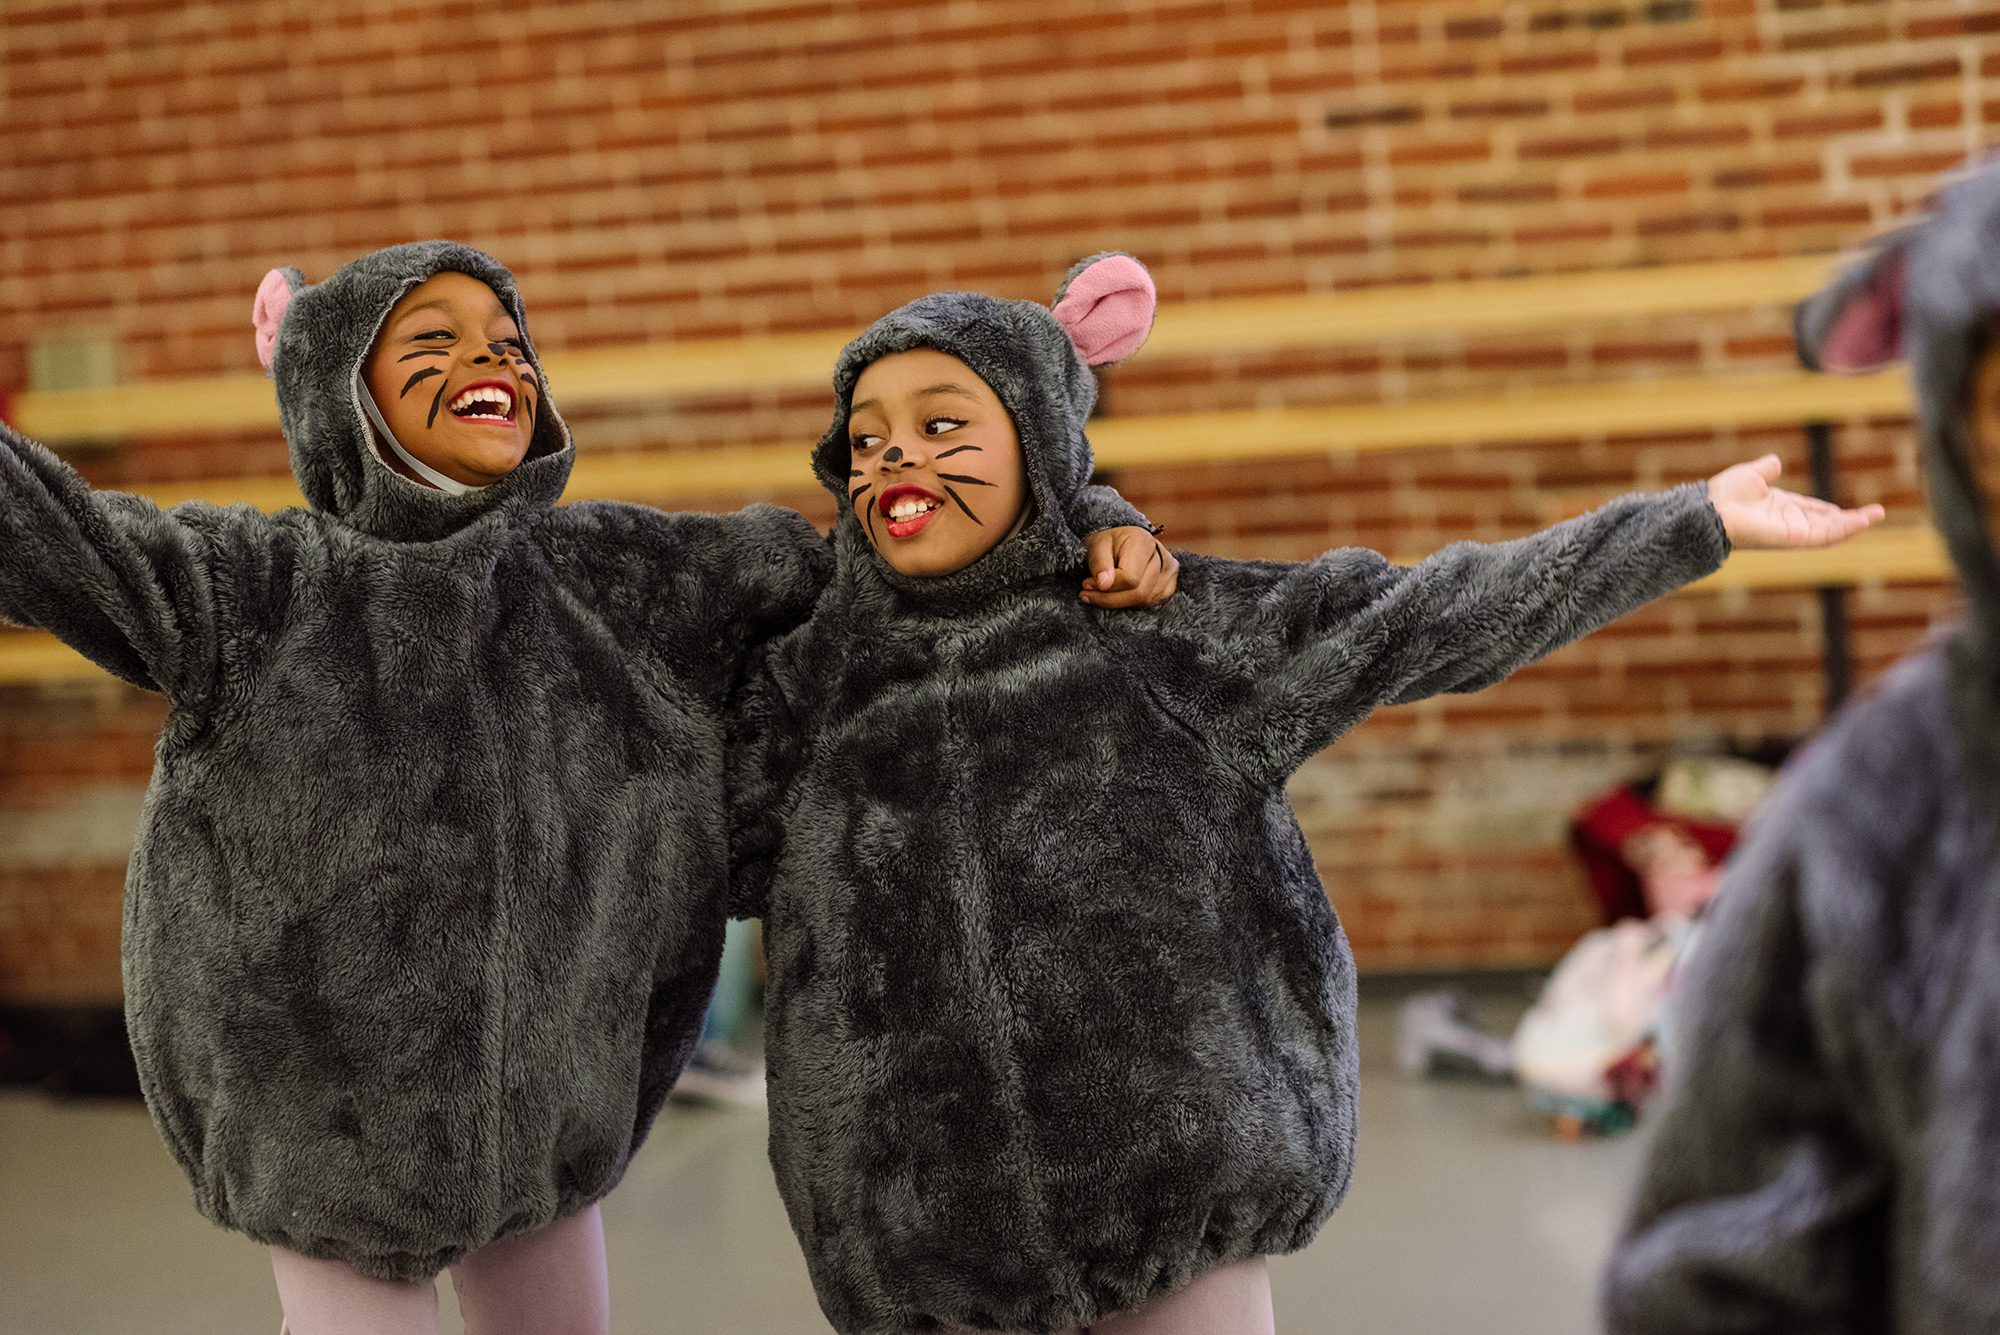 Two children dressed as mice.